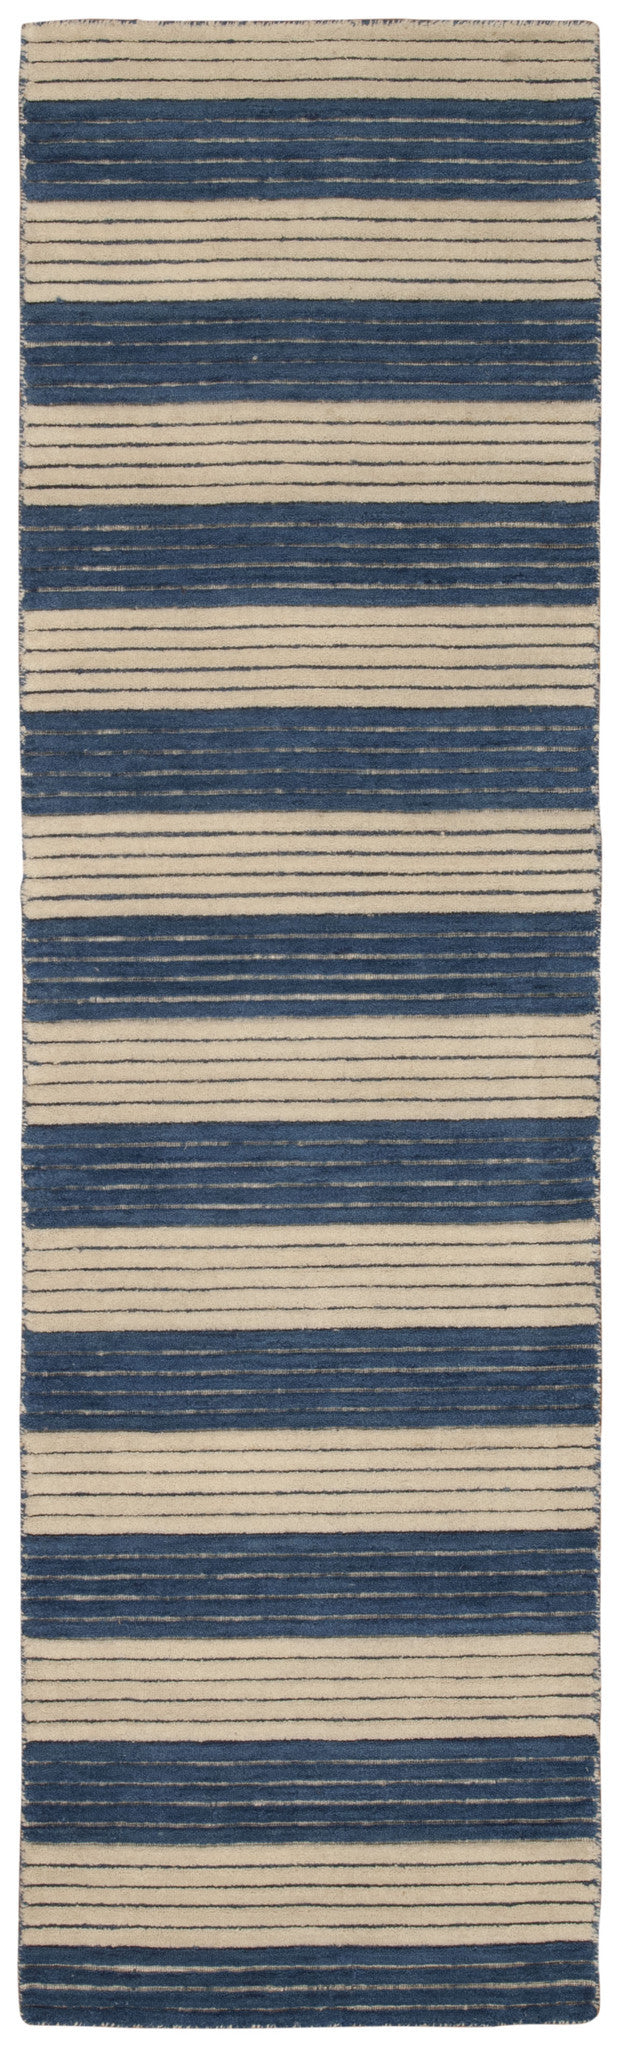 Barclay Butera Ripple Midnight Blue Area Rug By Nourison RIP02 MIDBL (Runner) | BOGO USA